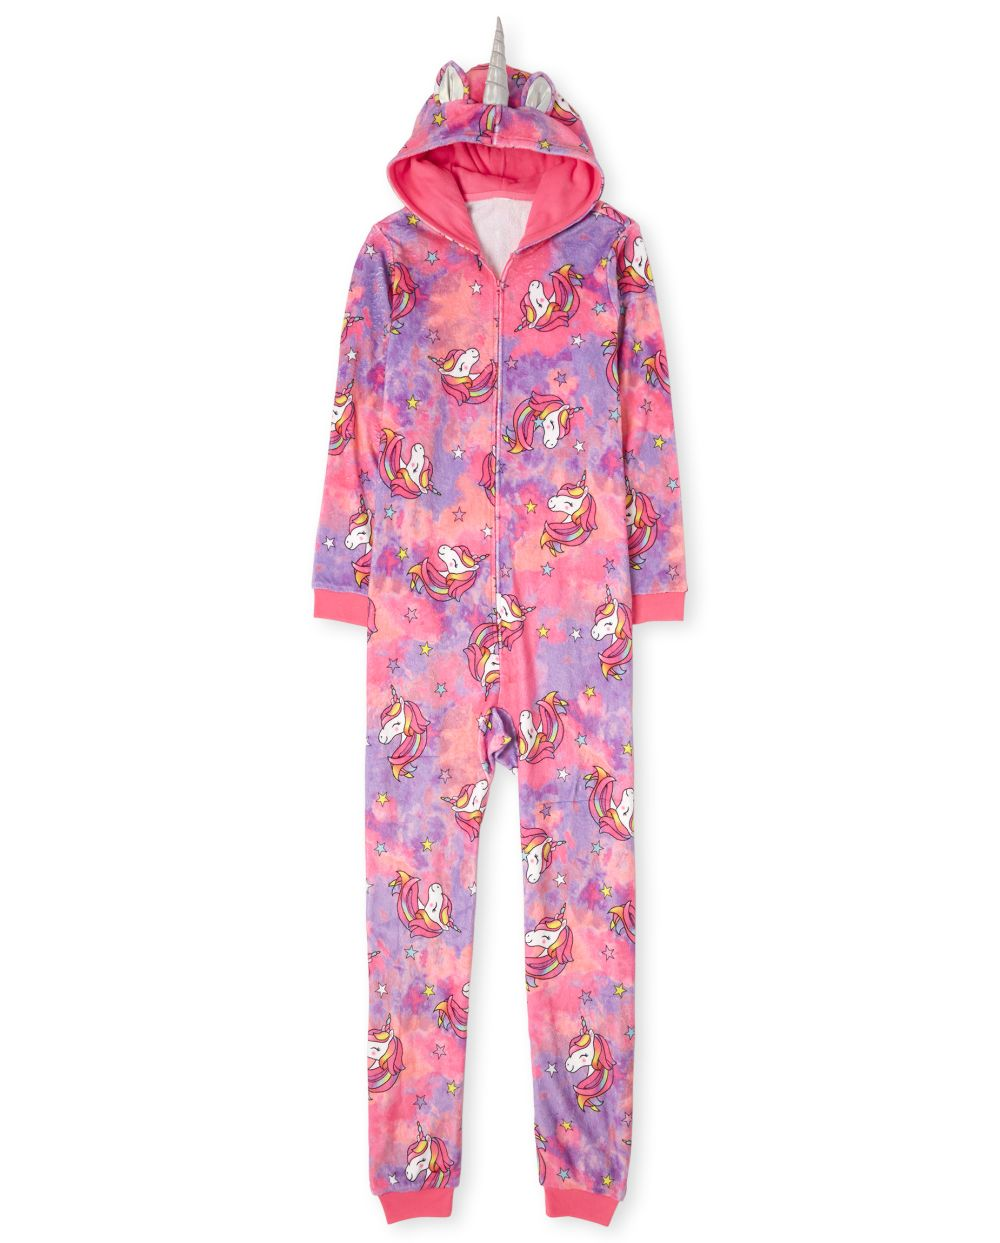 Womens Mommy And Me Unicorn Tie Dye Fleece Matching One Piece Pajamas